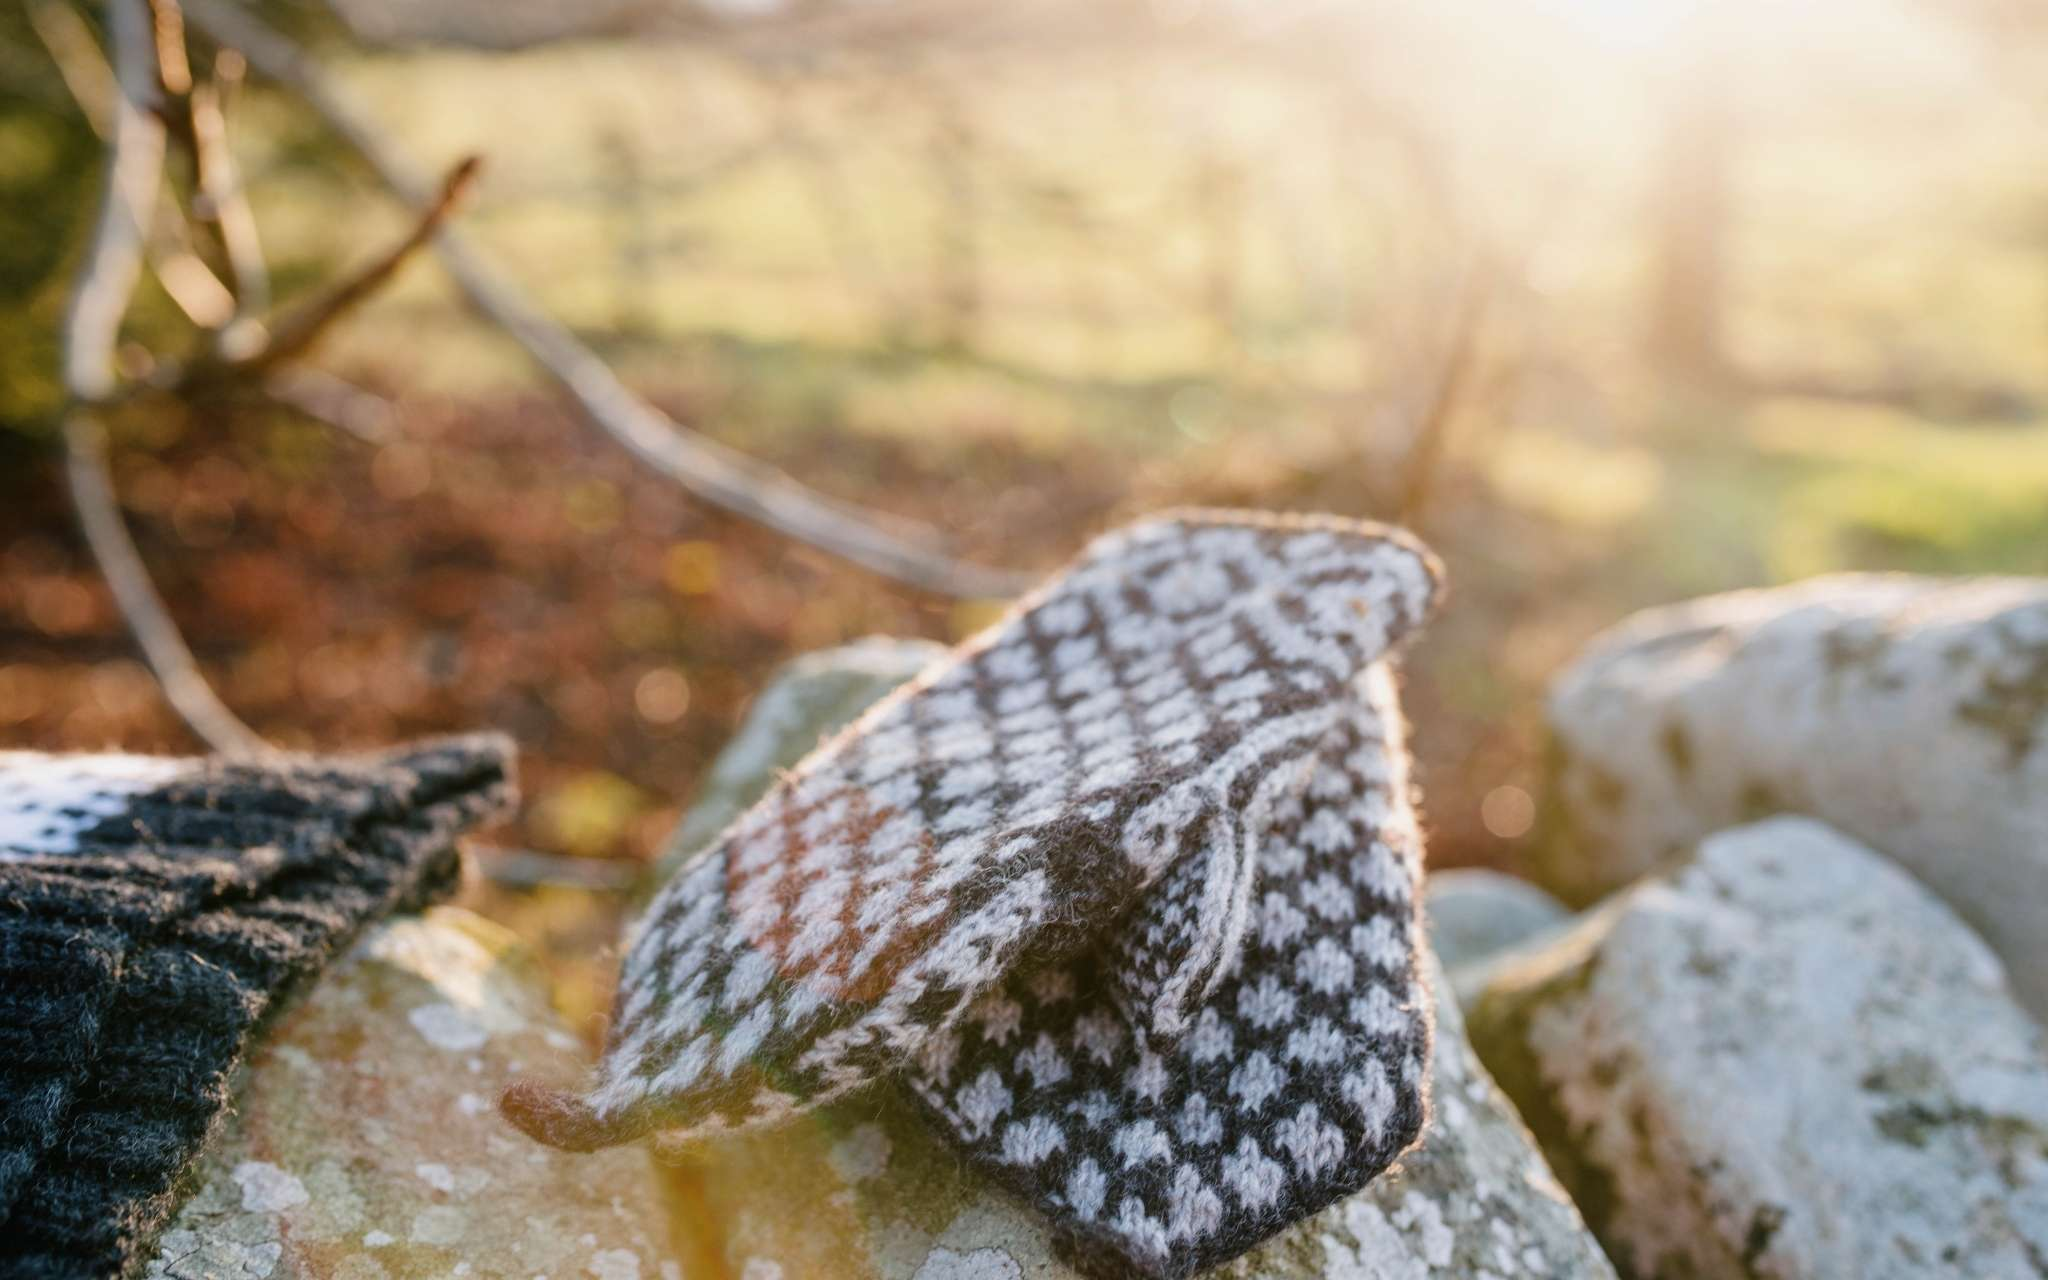 A pair of dark and cream colourwork mittens lay on top of each other, on a stone wall. The light shines in the background through a fence.